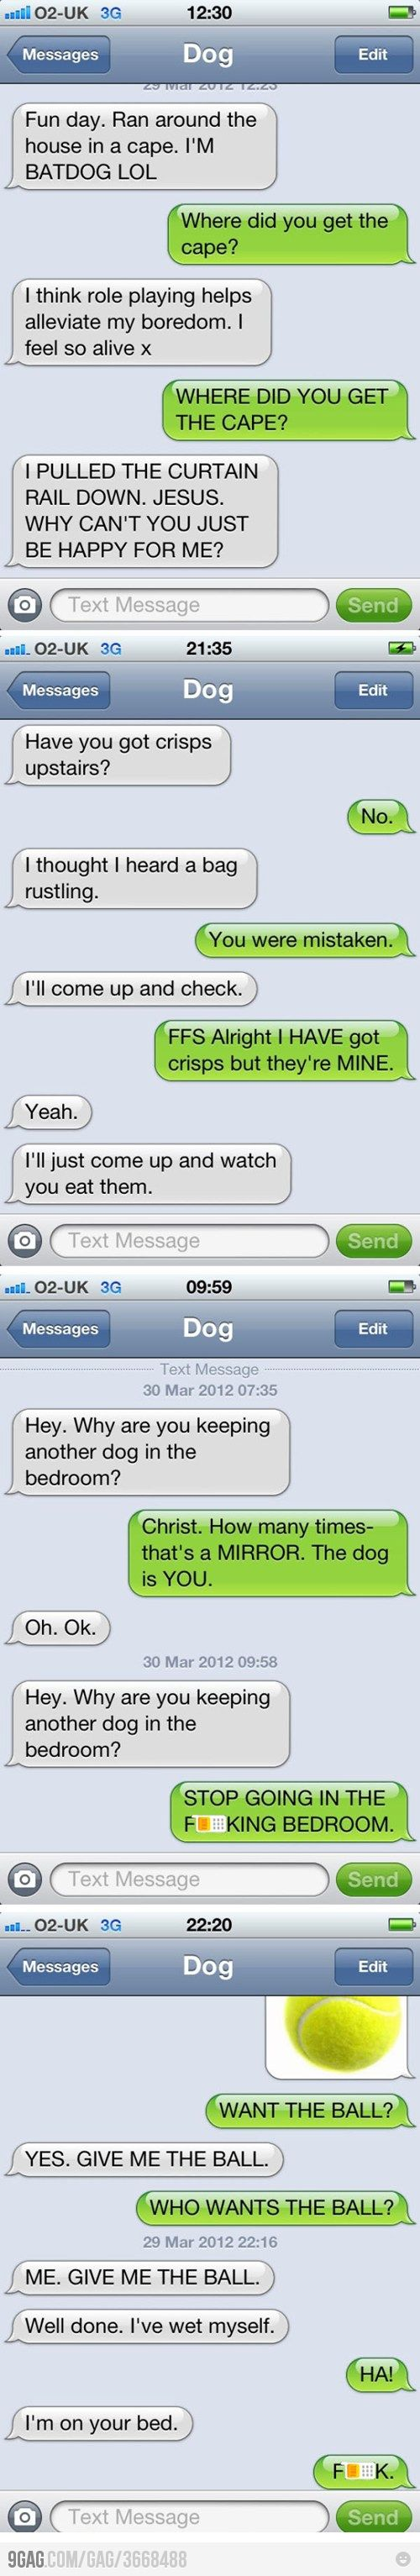 Absolute favorite dog text :0) I can see Boomer sending it to